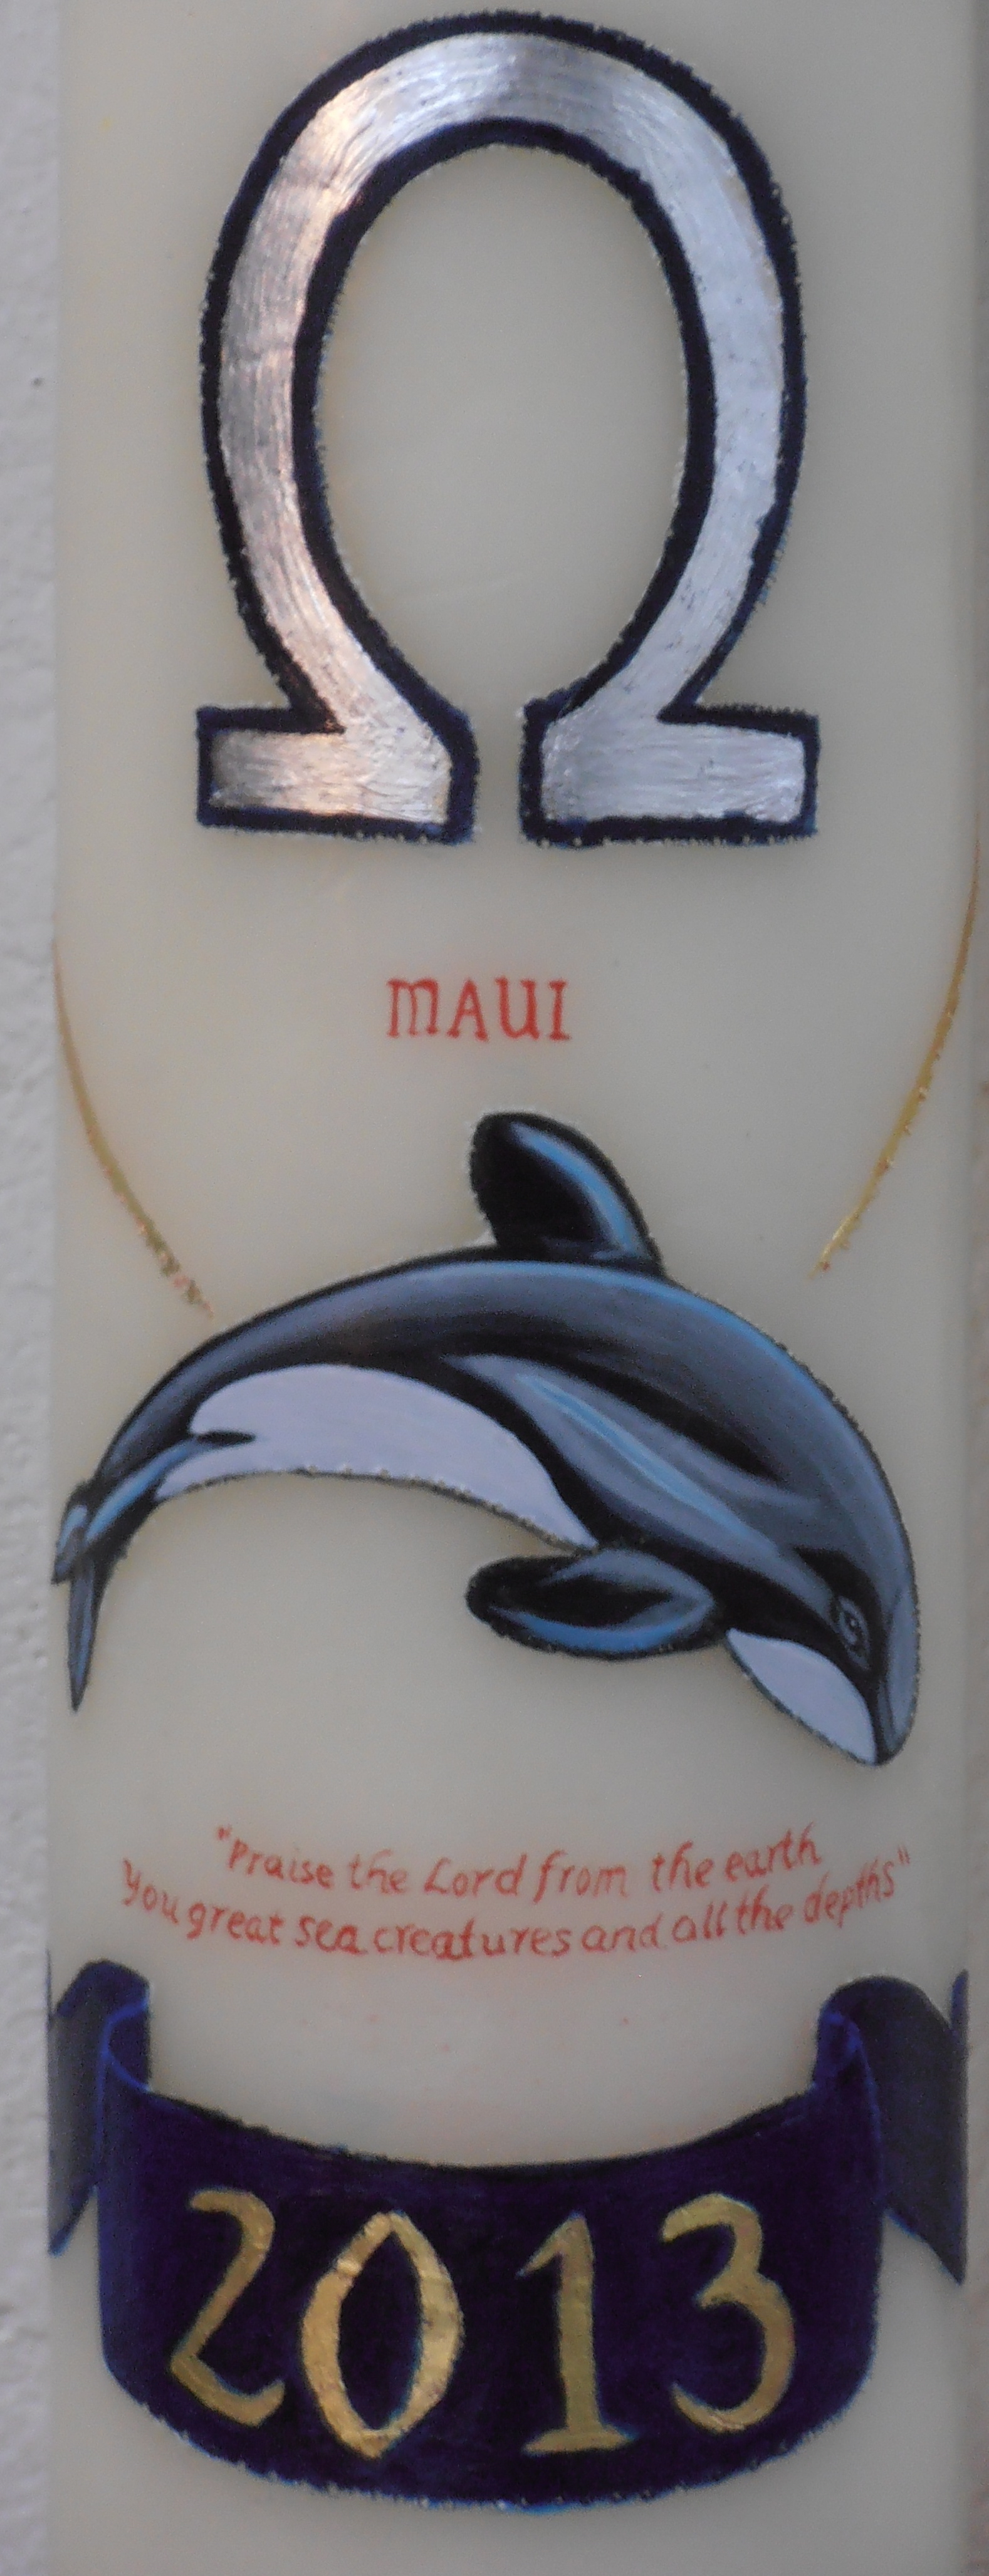 Paschal Candle. Saint Paul's Cathedral, London 2013.  Detail of Maui Dolphin.